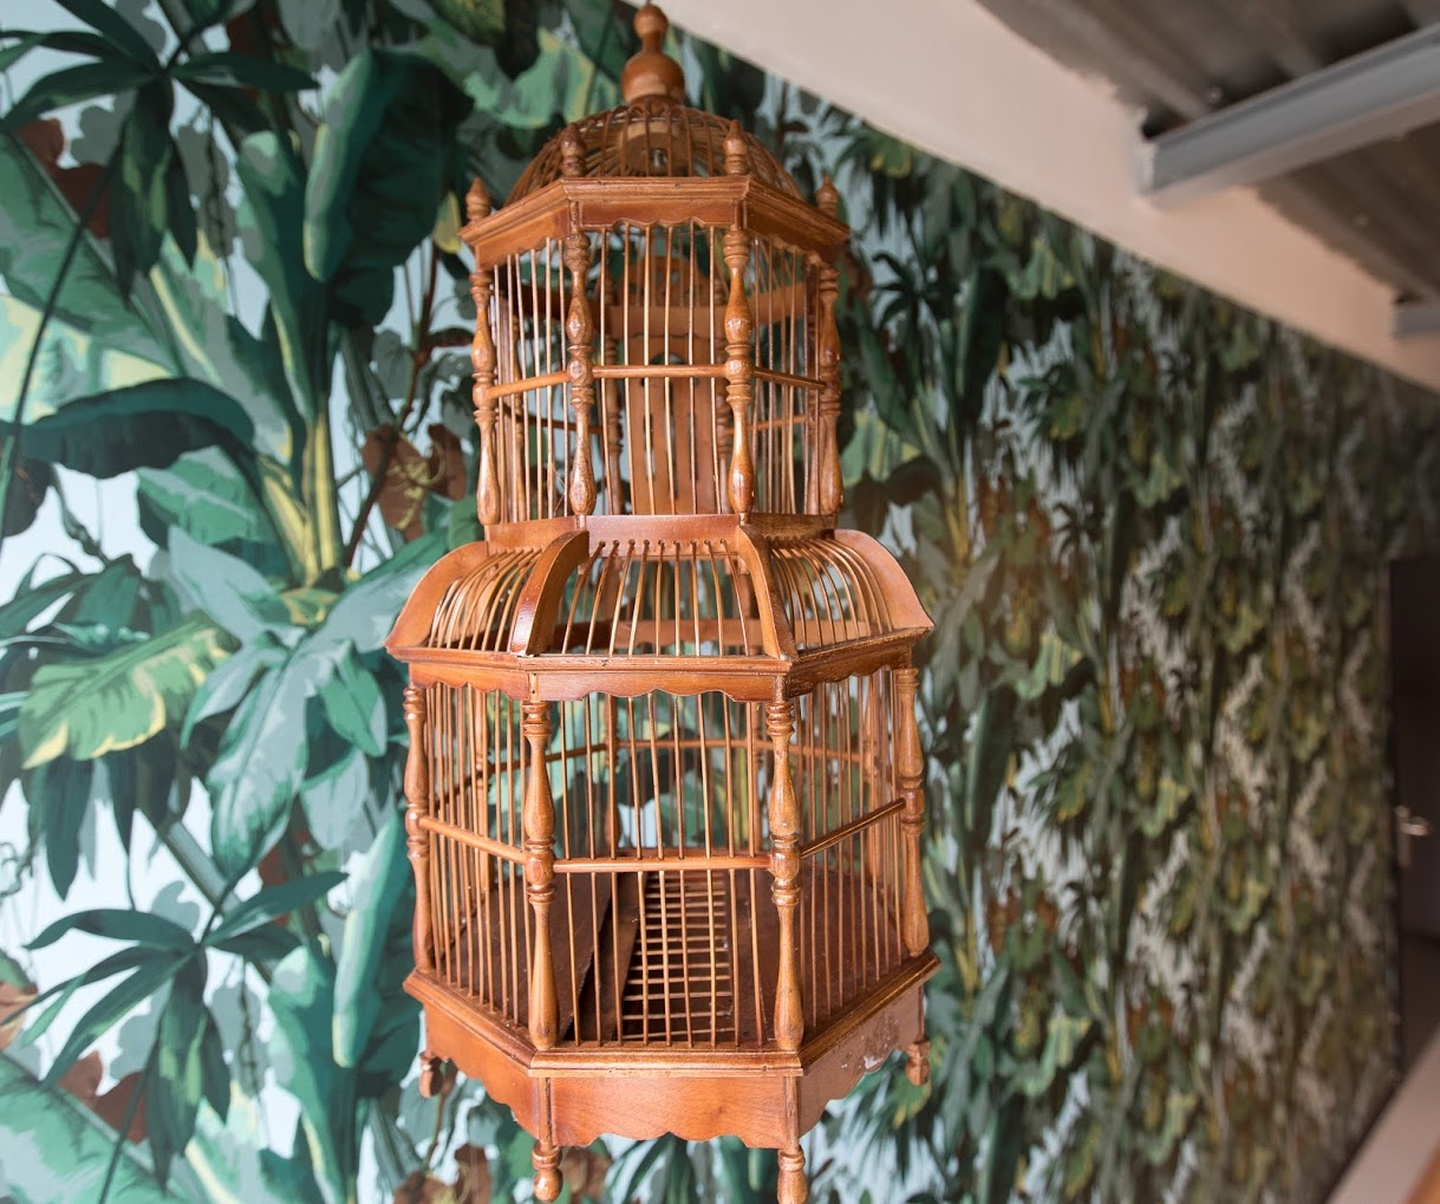 Berlin conference rooms Meetingraum rent24 Mitte - Welcome to the Jungle image 2